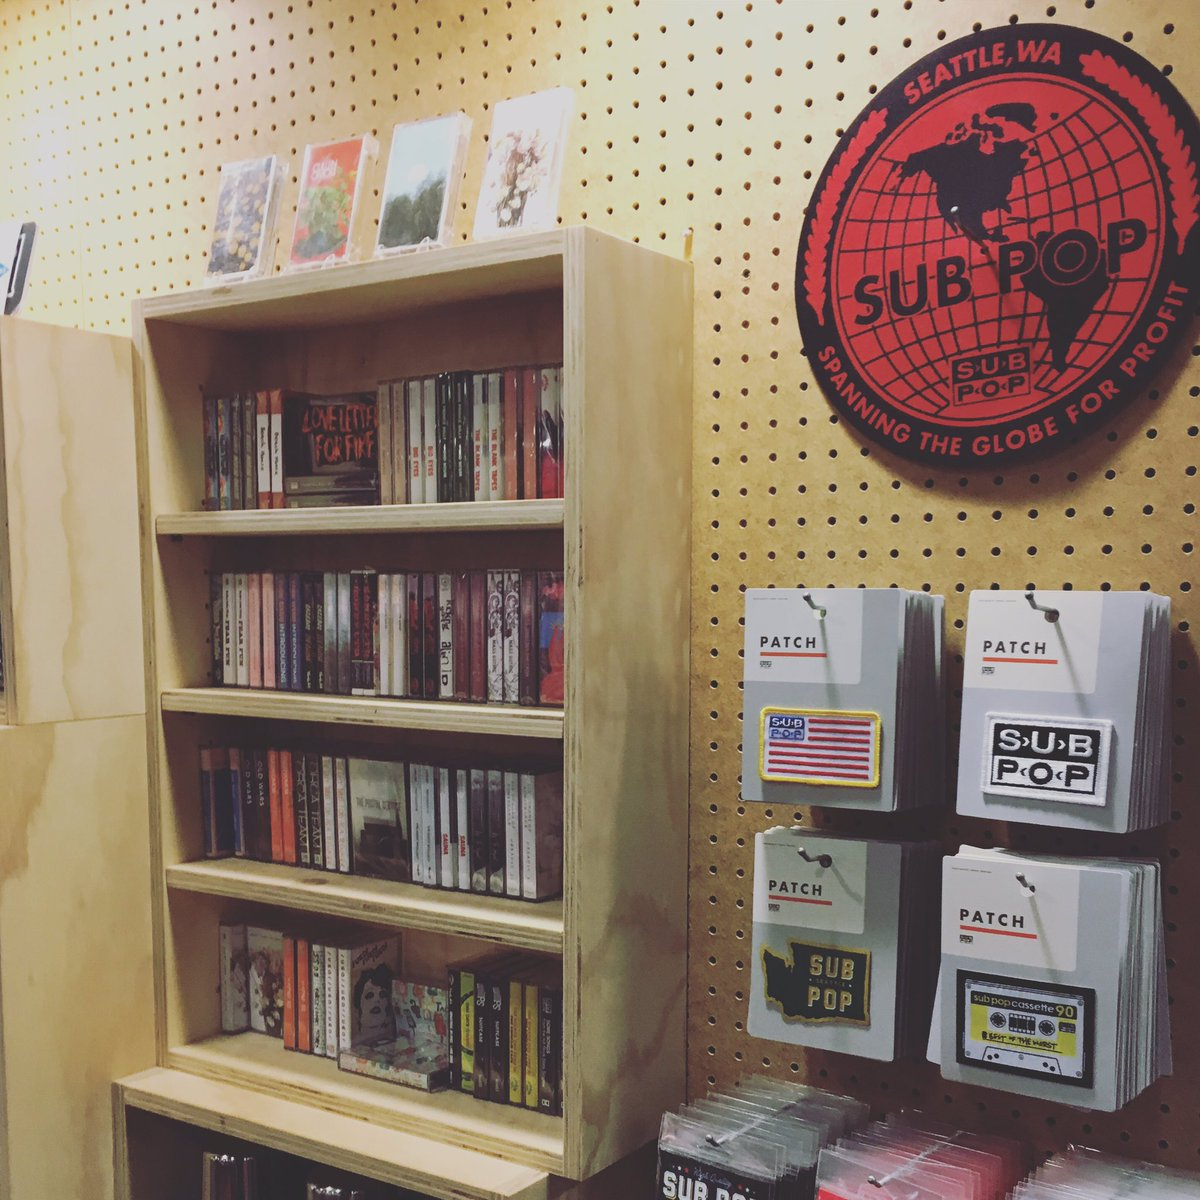 Wow, not only is there a @subpop record store in the airport but they're still selling cassettes. #amazing https://t.co/7yug035AQo